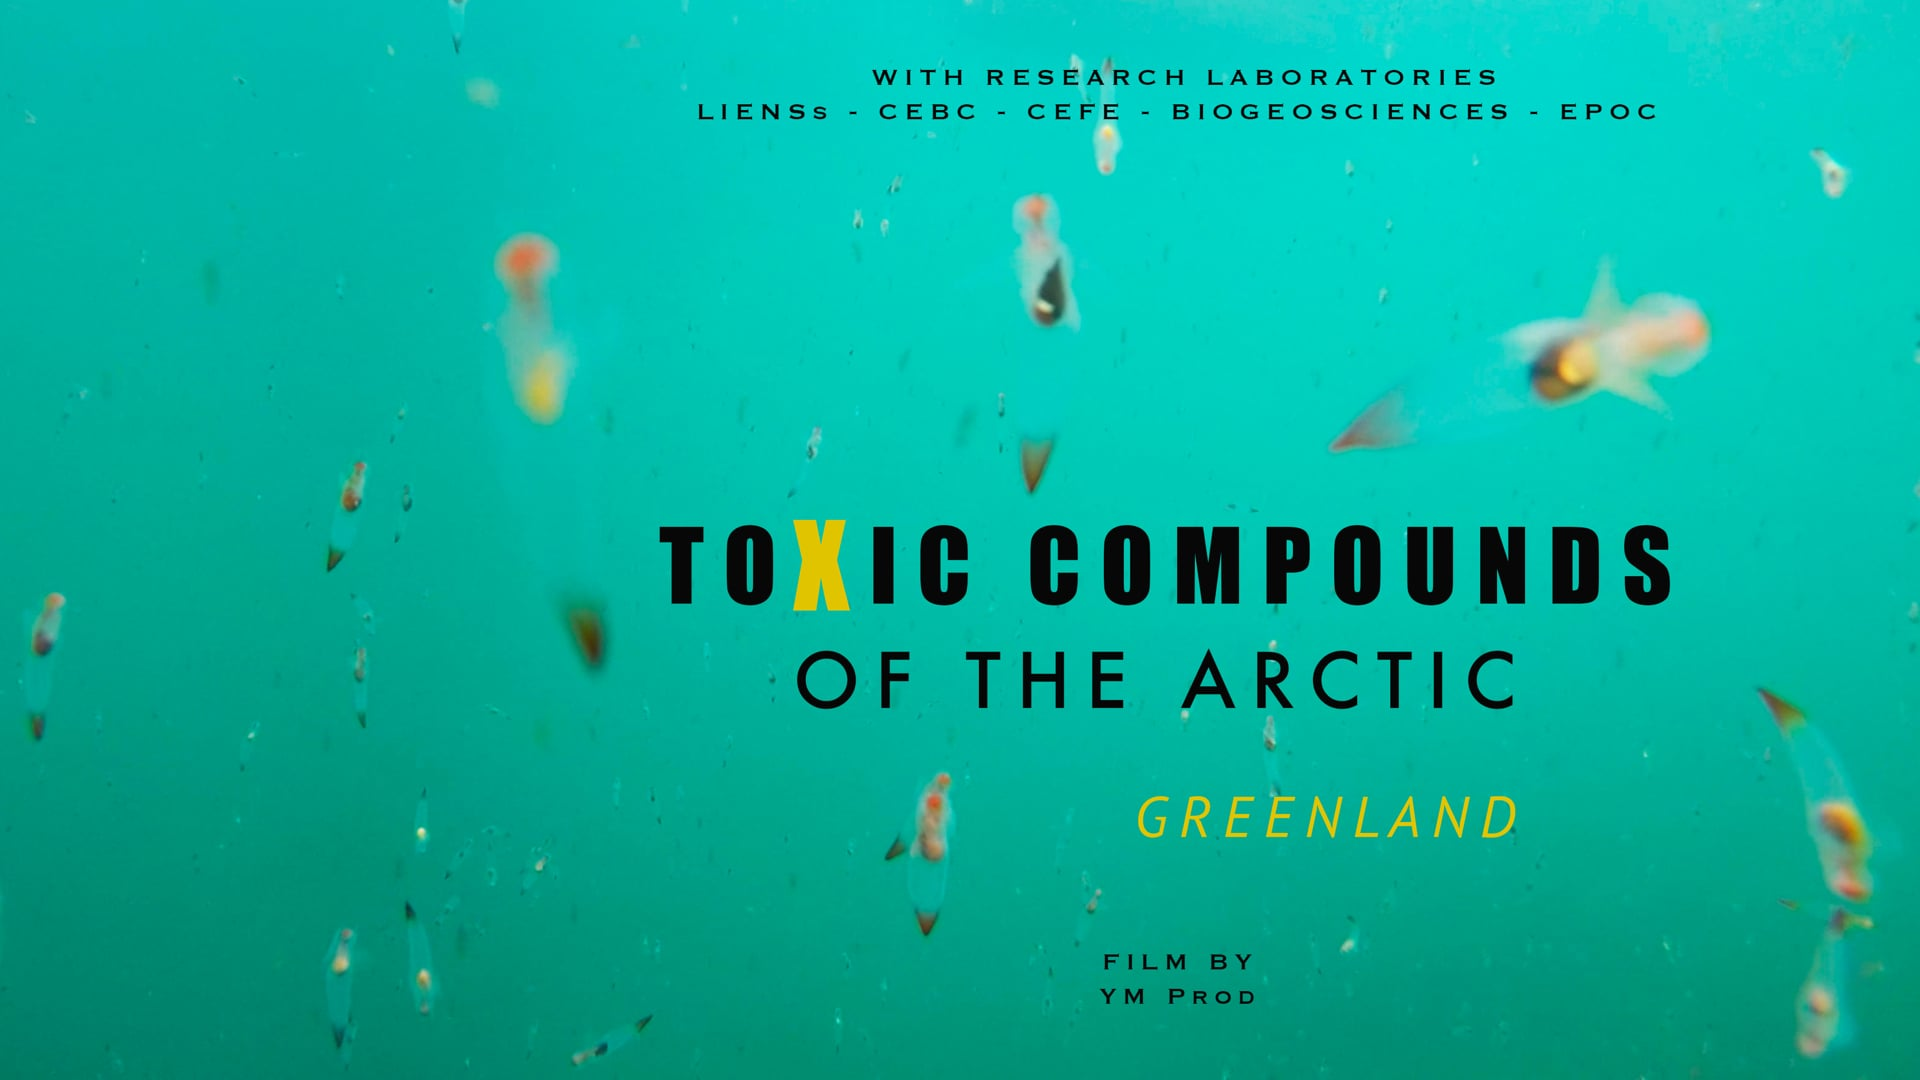 The toxic compounds of the Arctic- Greenland